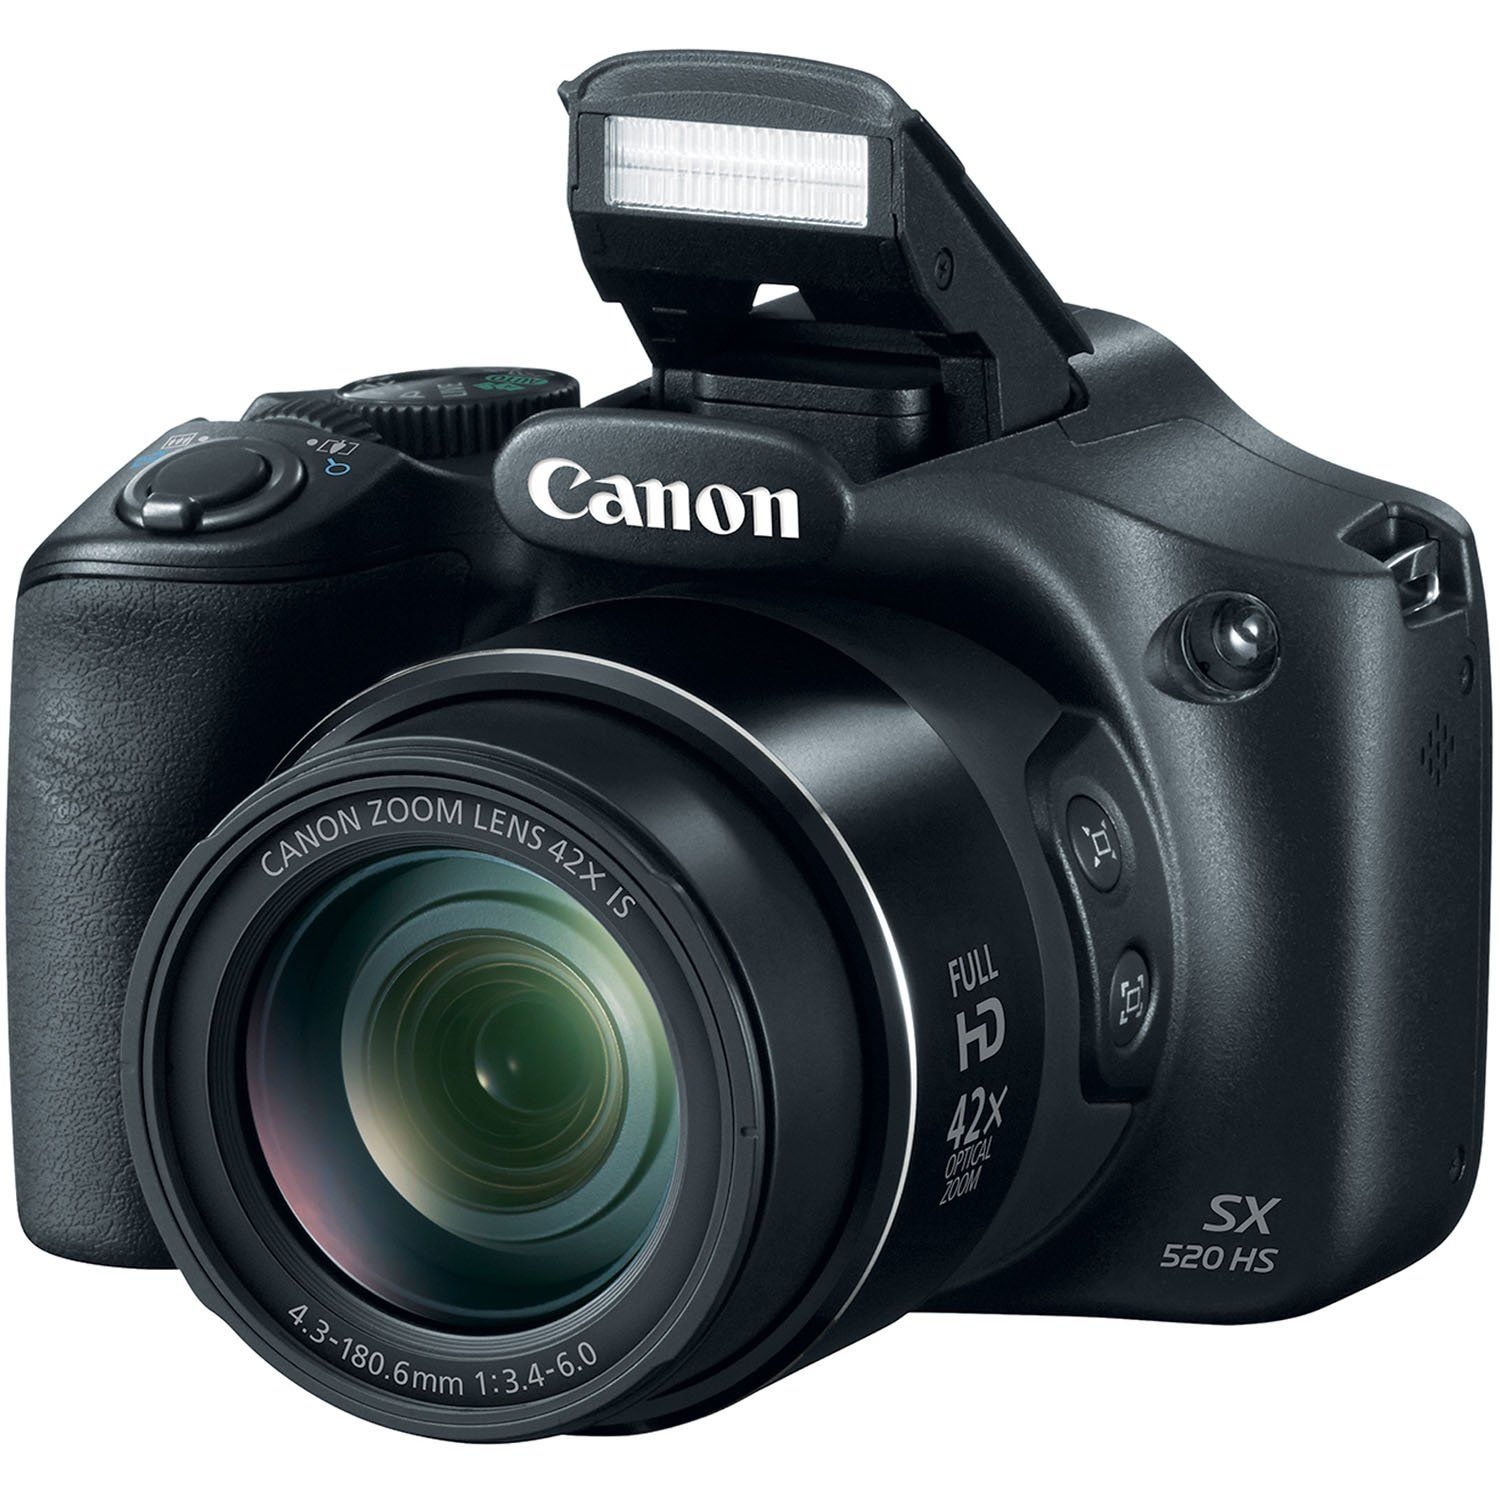 Canon Powershot Sx520 16digital Camera With 42x Optical Image Stabilized Zoom With 3 Inch Lcd Black By Canon Canon Powershot Best Digital Camera Powershot